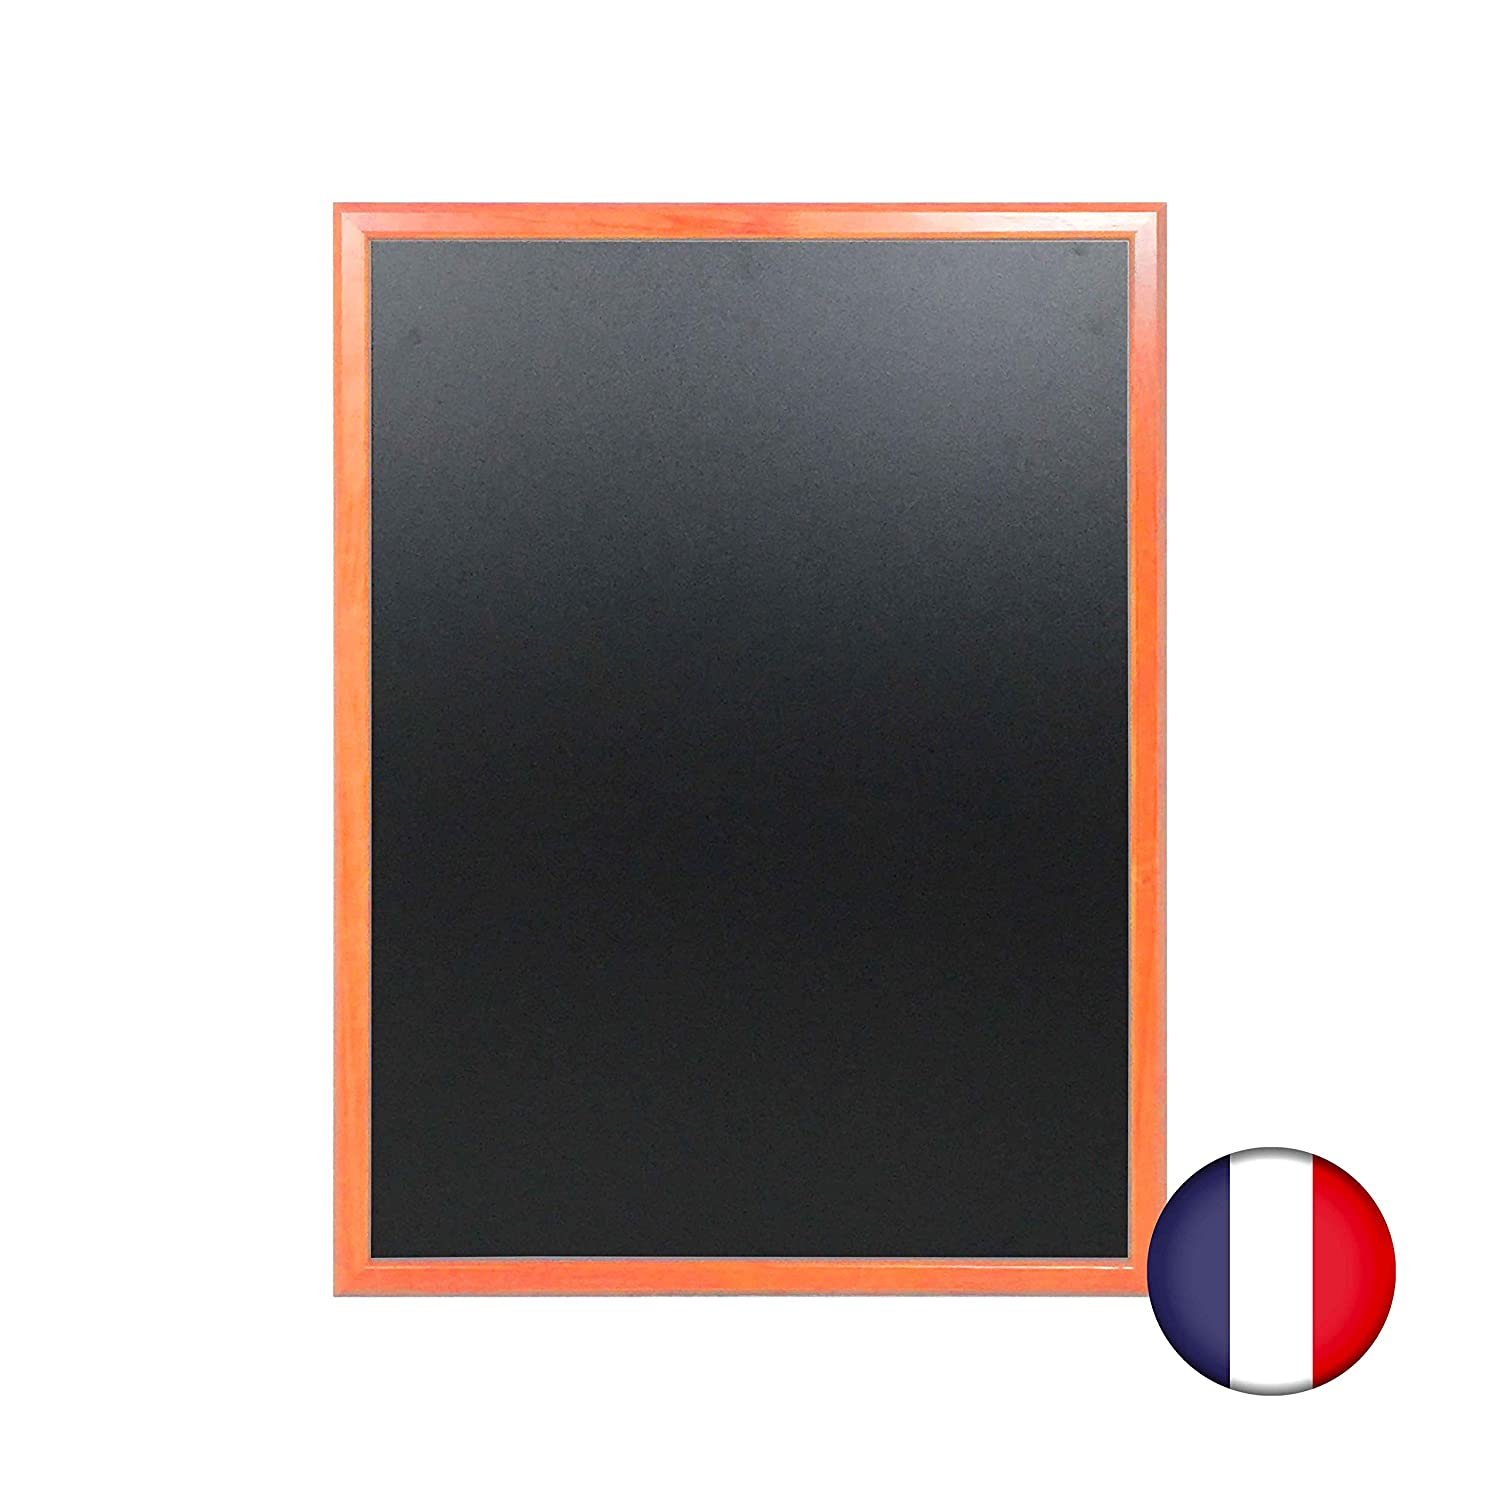 Pizarra de pared de madera color naranja dimensiones 86 x 66 ...